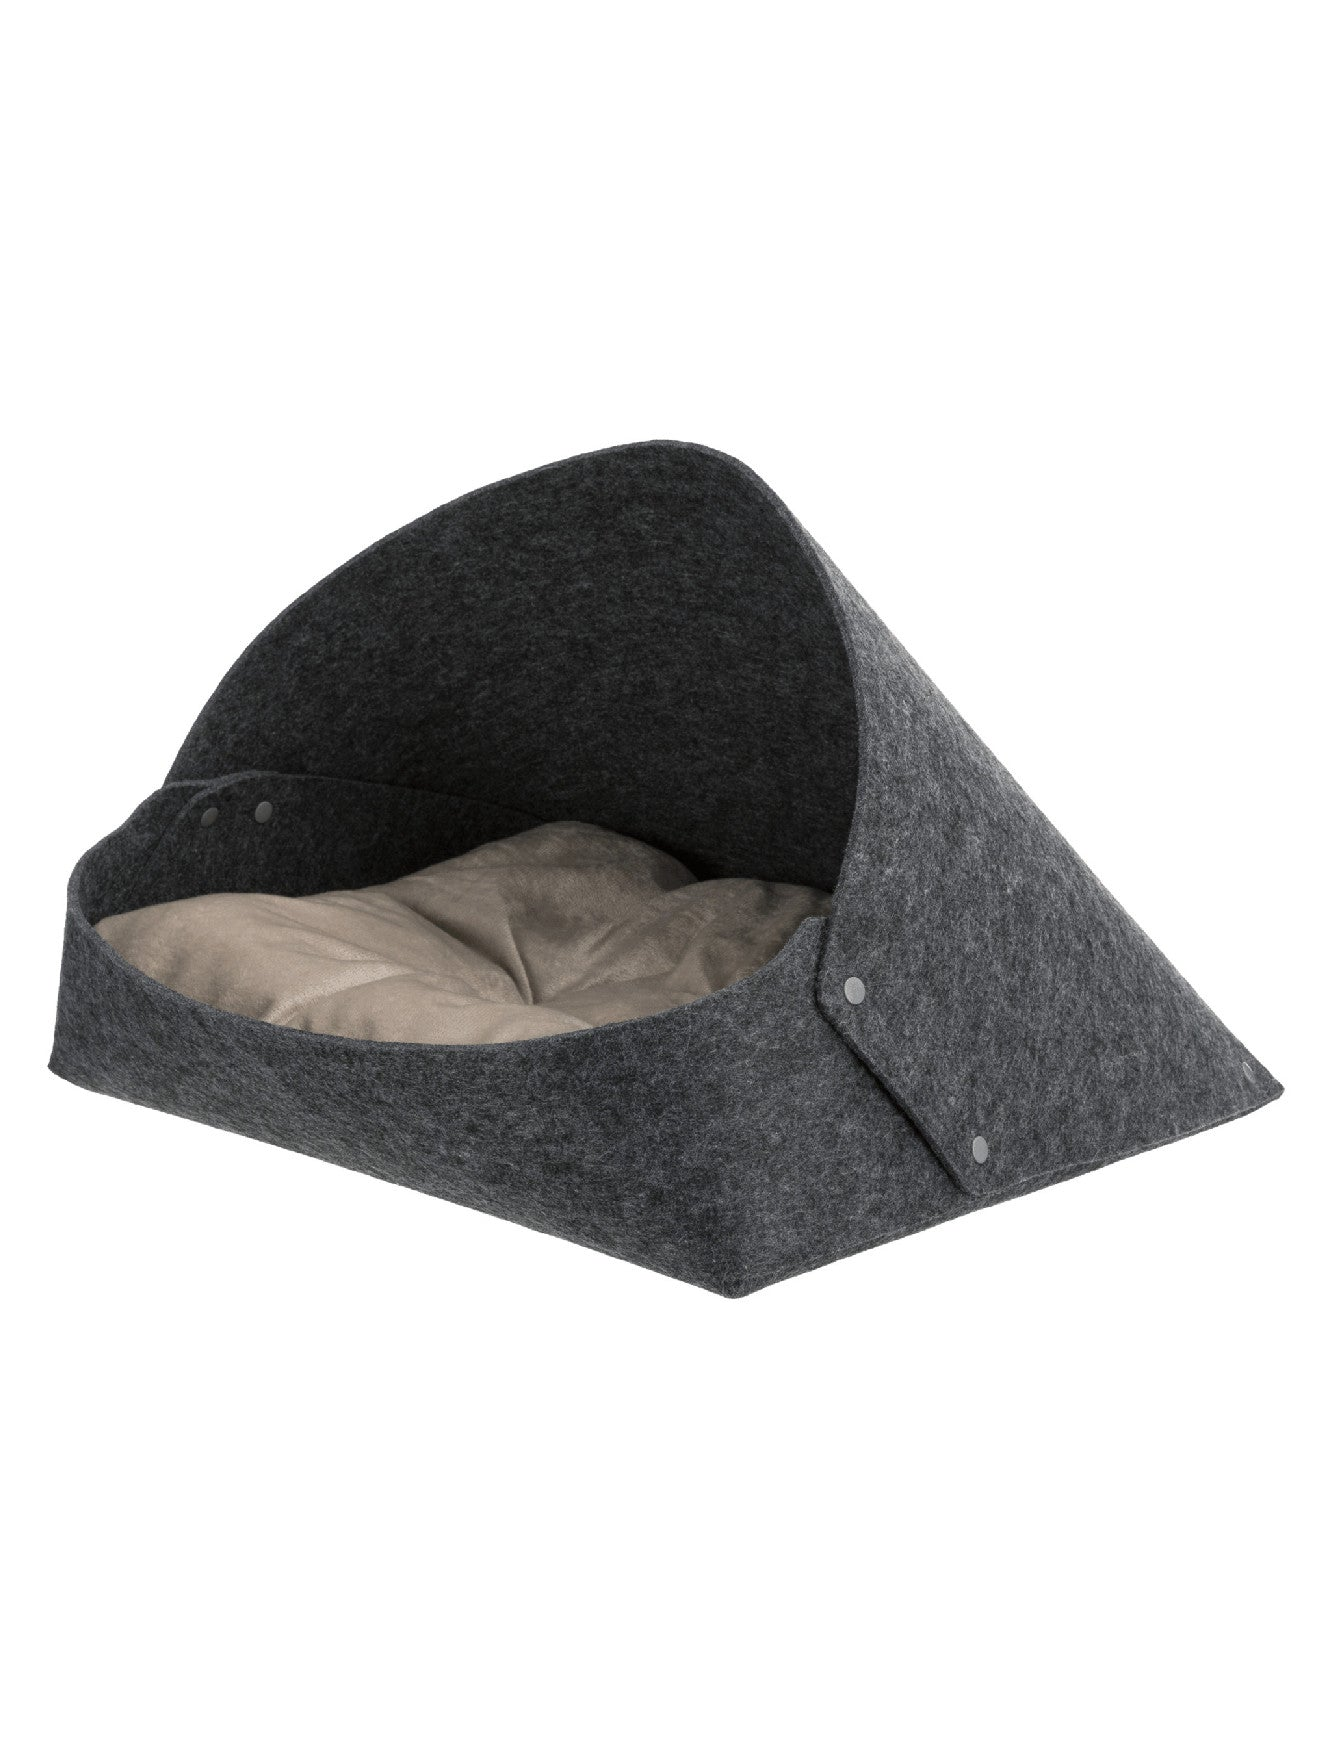 Trixie Arta Cuddly Cave Felt Anthracite For Dogs 55 × 50 × 77 cm | Perromart Online Pet Store Singapore